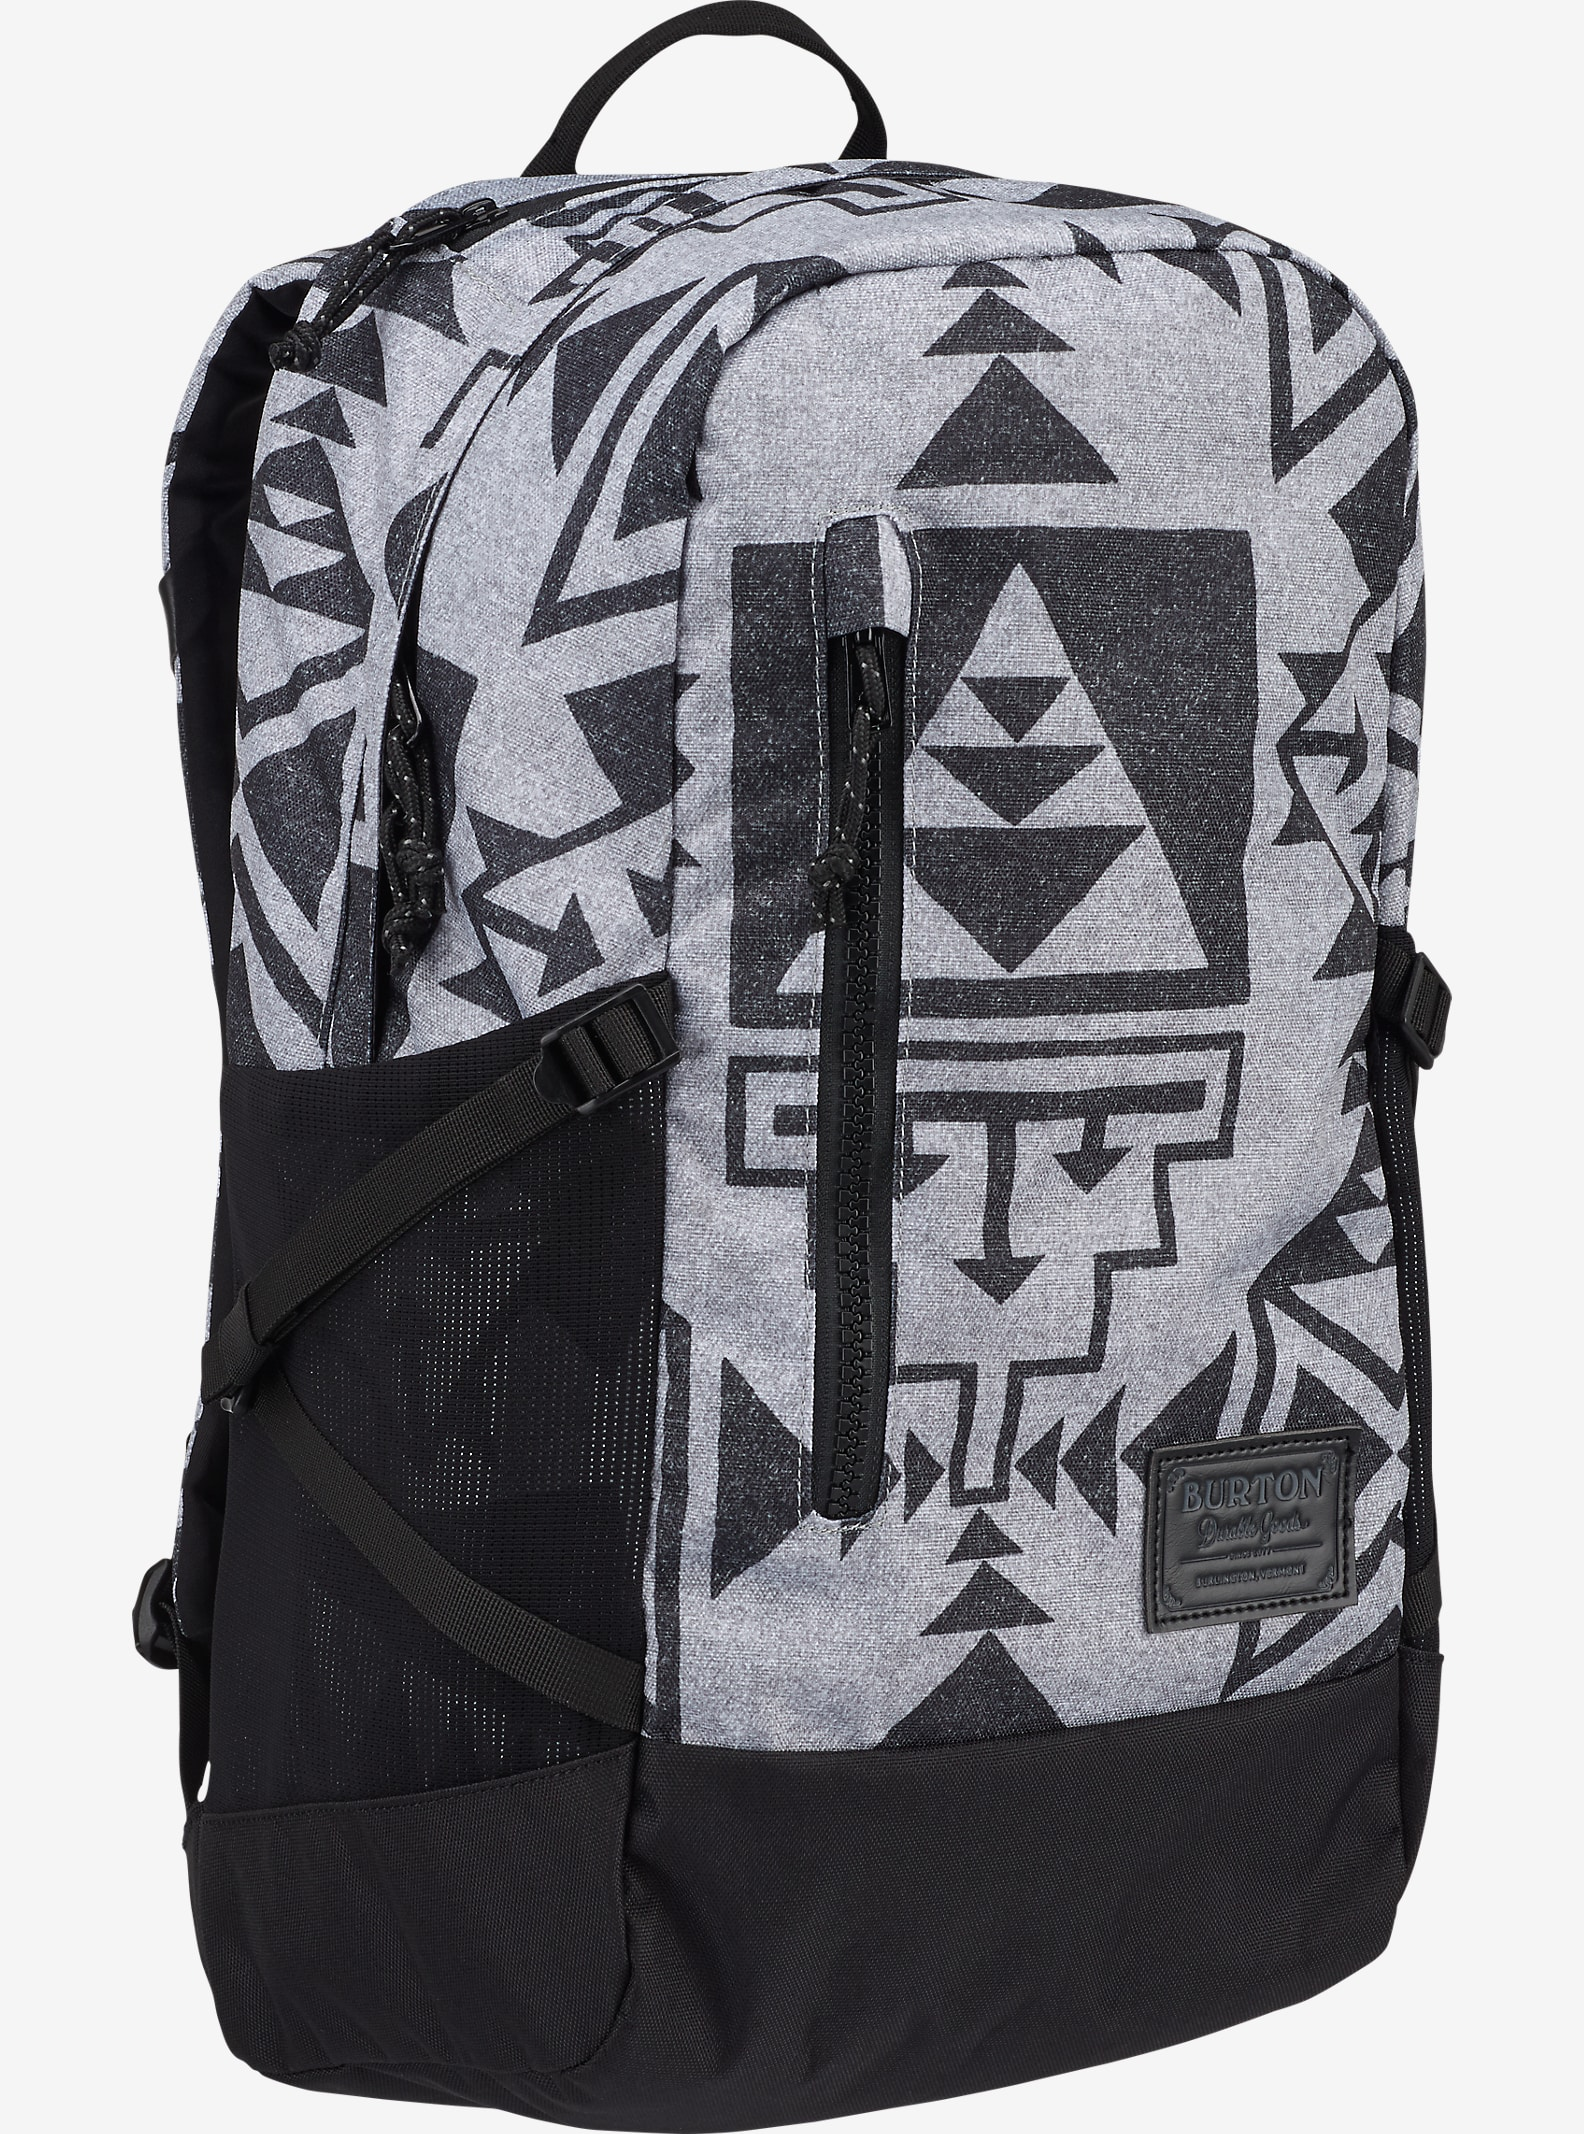 Burton Women's Prospect Backpack shown in Neu Nordic Print